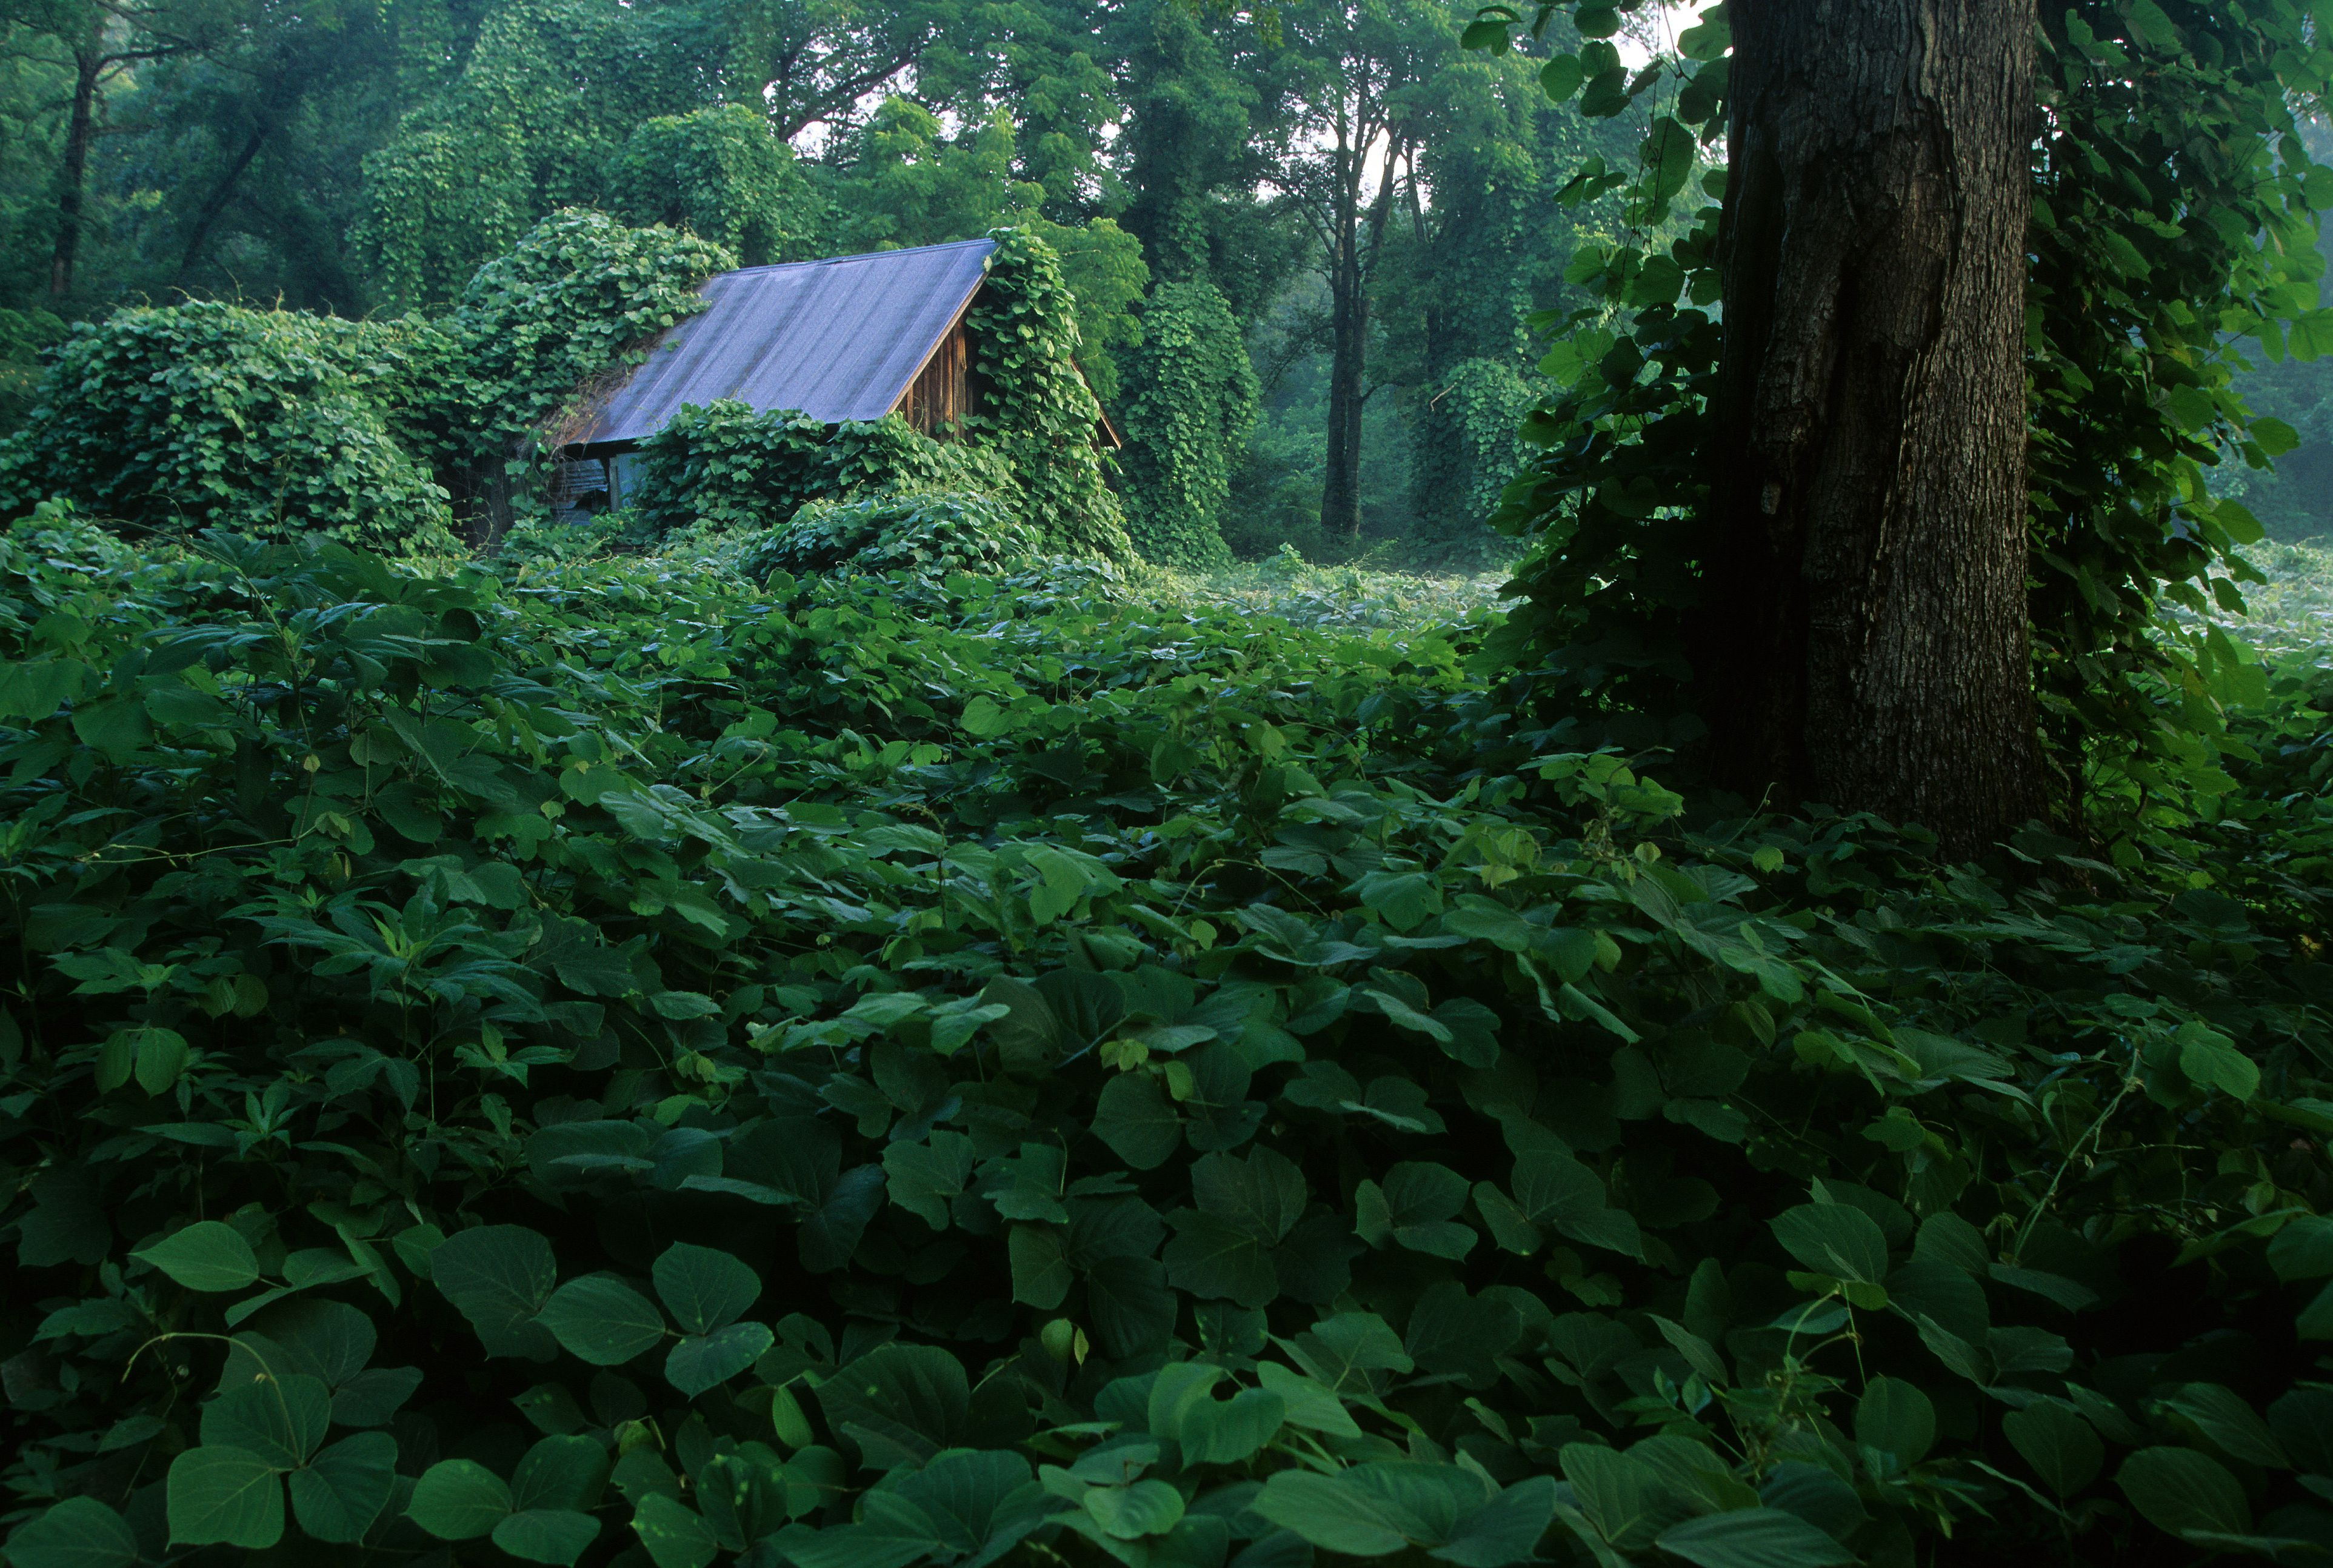 Kudzu in the South over growing a barn